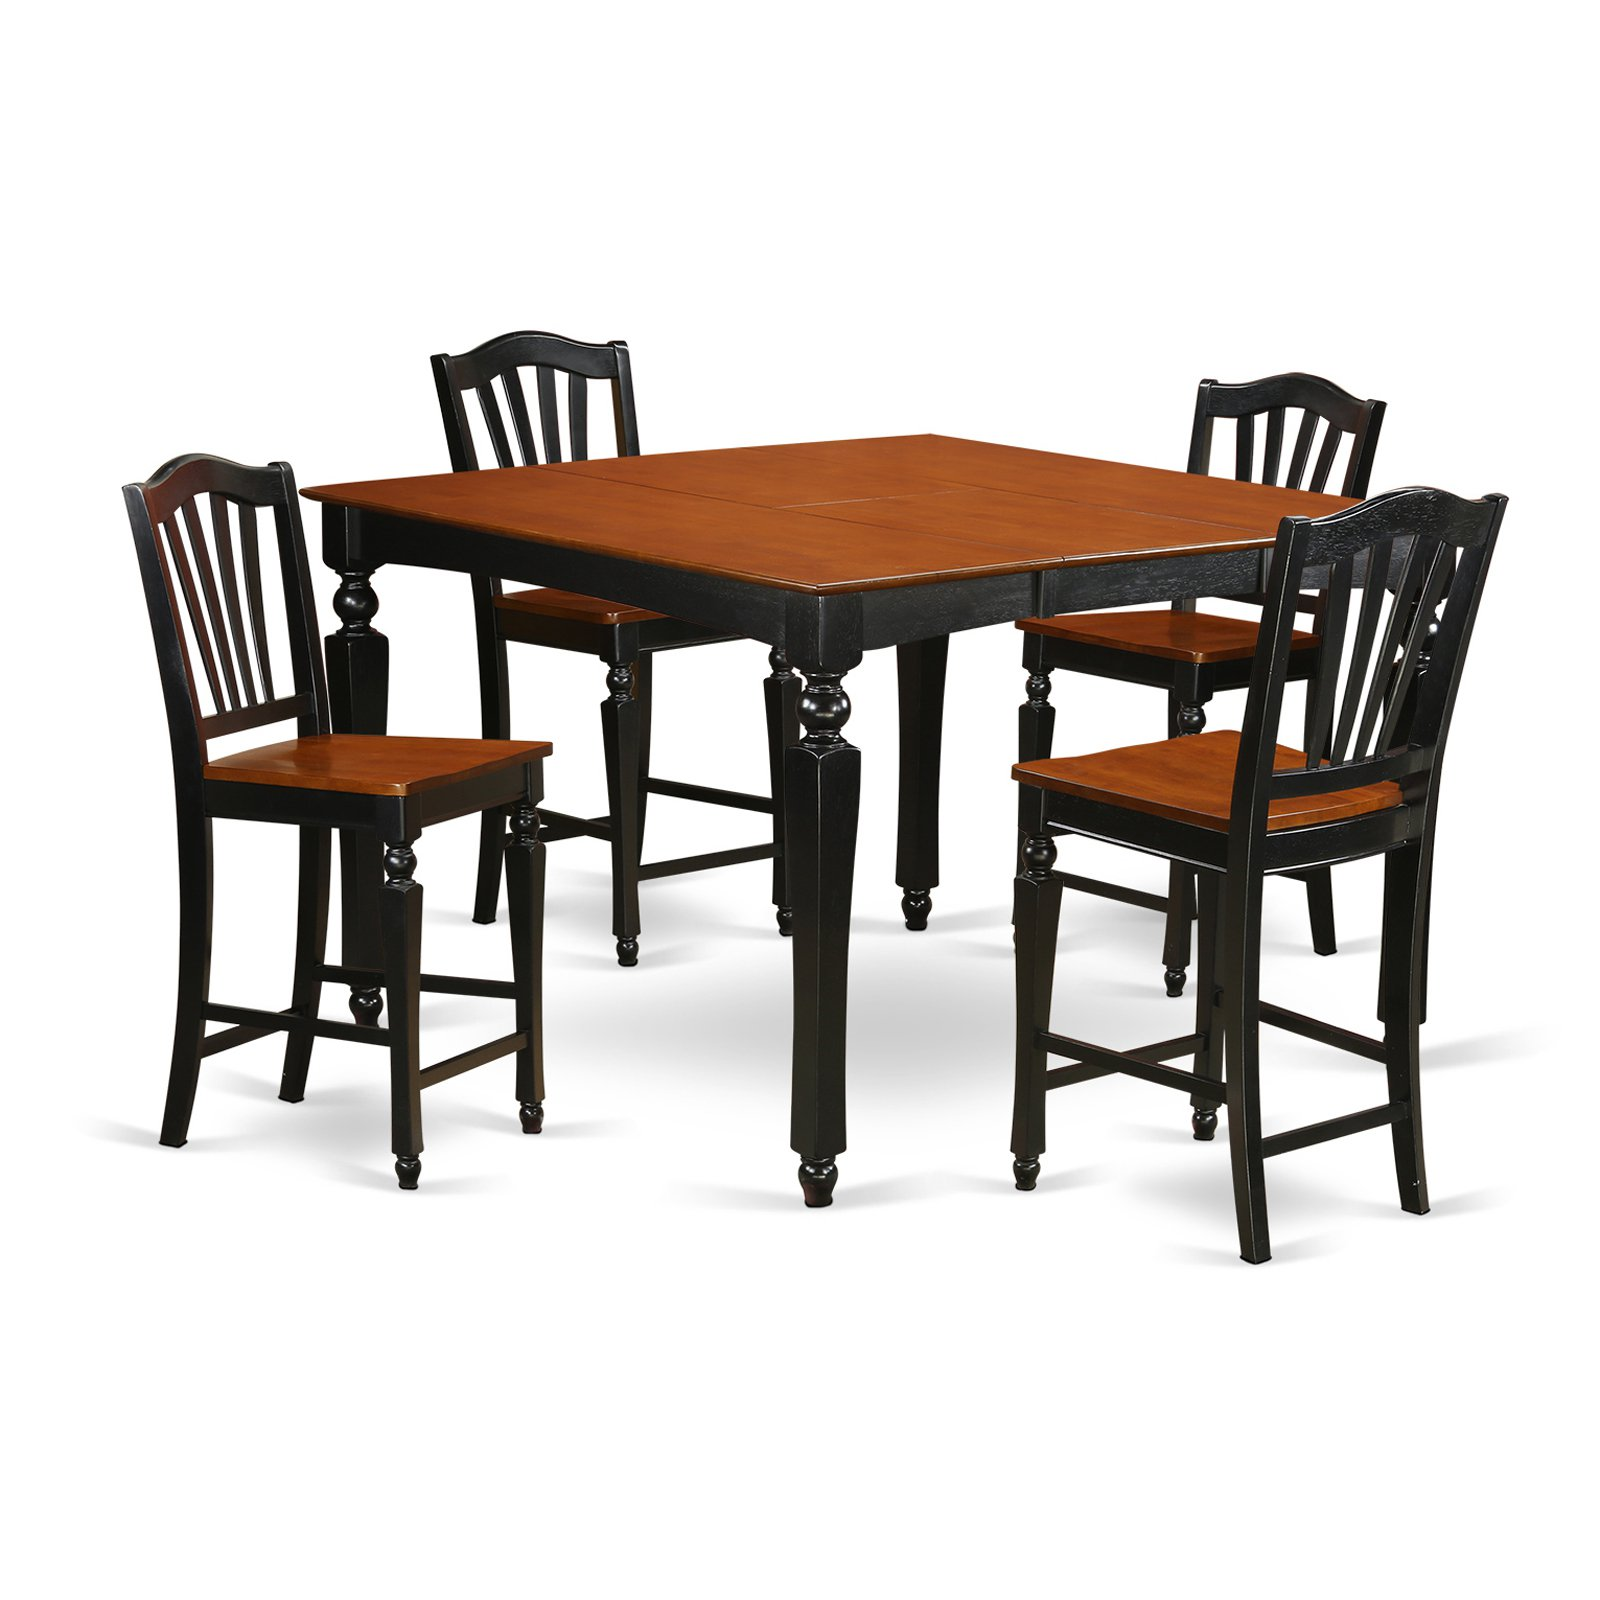 East West Furniture Chelsea 5 Piece High Splat Dining Table Set